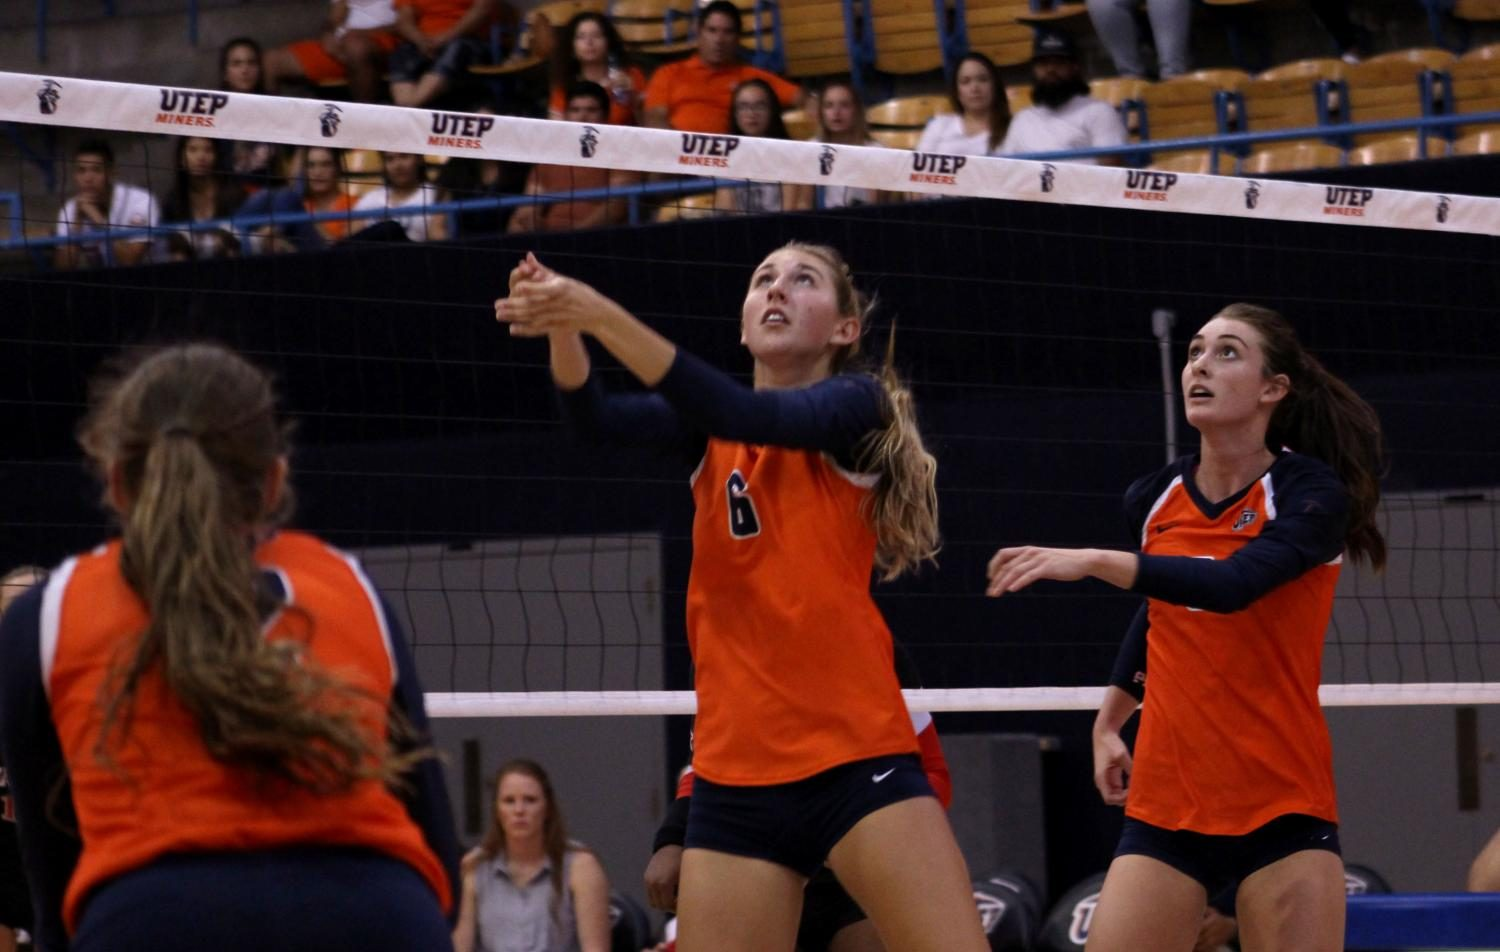 Women's volleyball falls to 0-3 after loss to Texas Tech in home opener